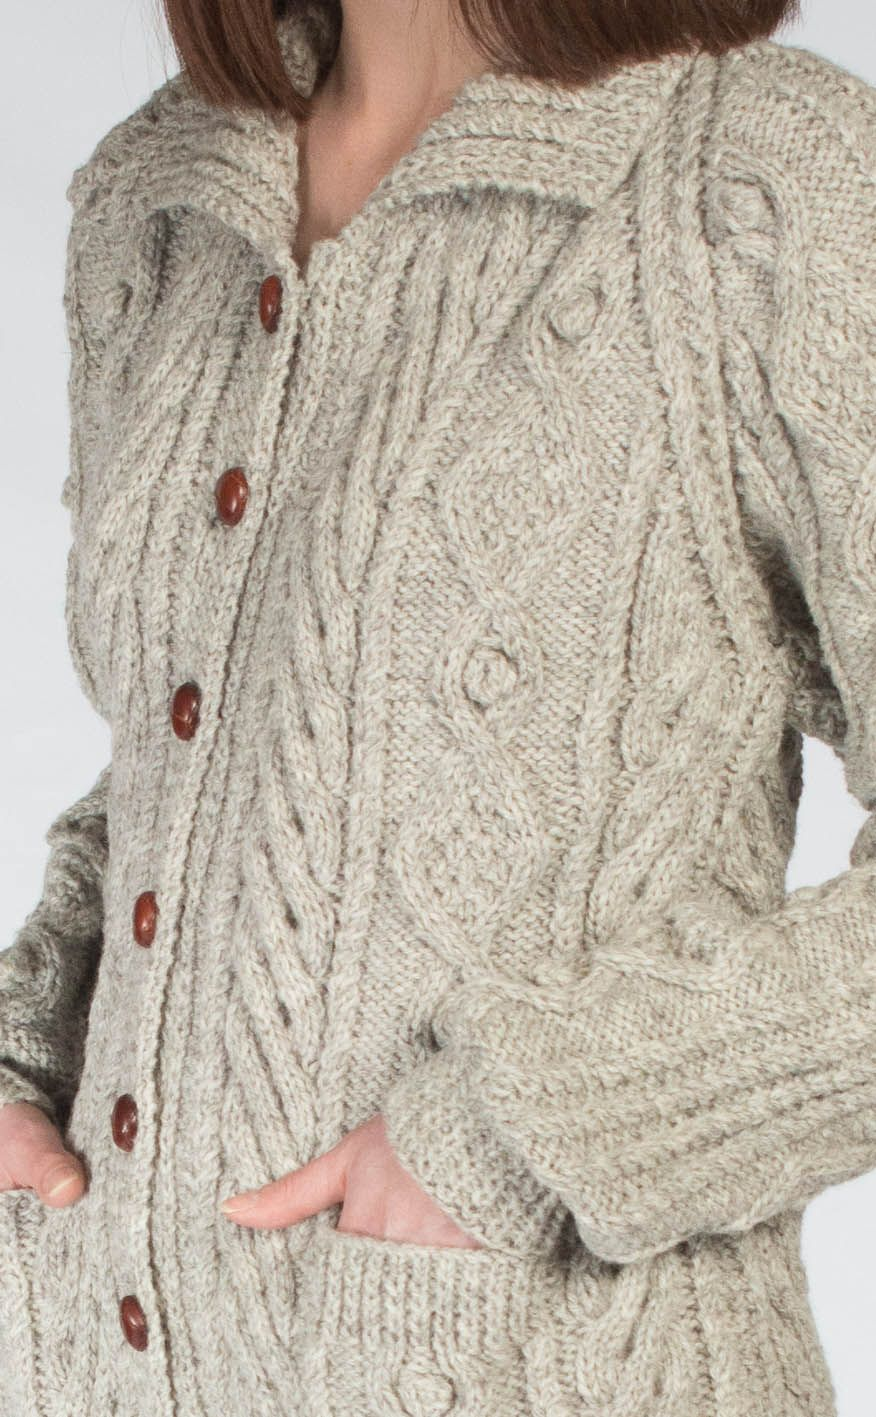 c2383107e2b0d8 With great handknitted detail this Aran cardigan is perfect for warming up  your everyday casual wear when winter comes round